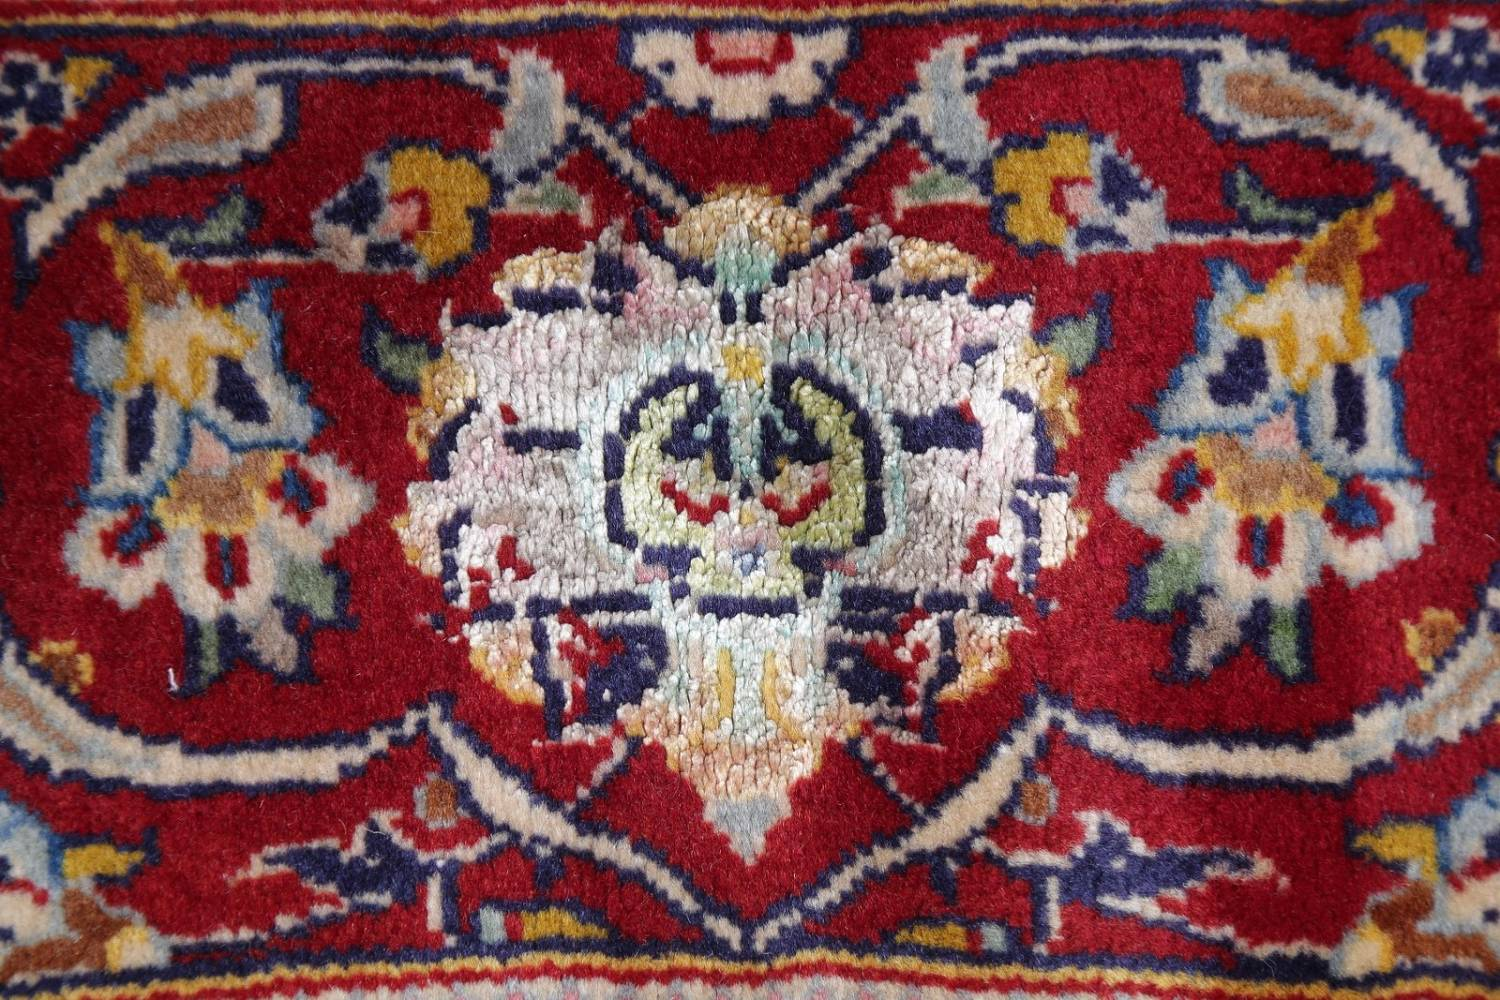 Vegetable Dye Floral Blue Kashan Persian Hand-Knotted Area Rug Wool 5x7 image 7